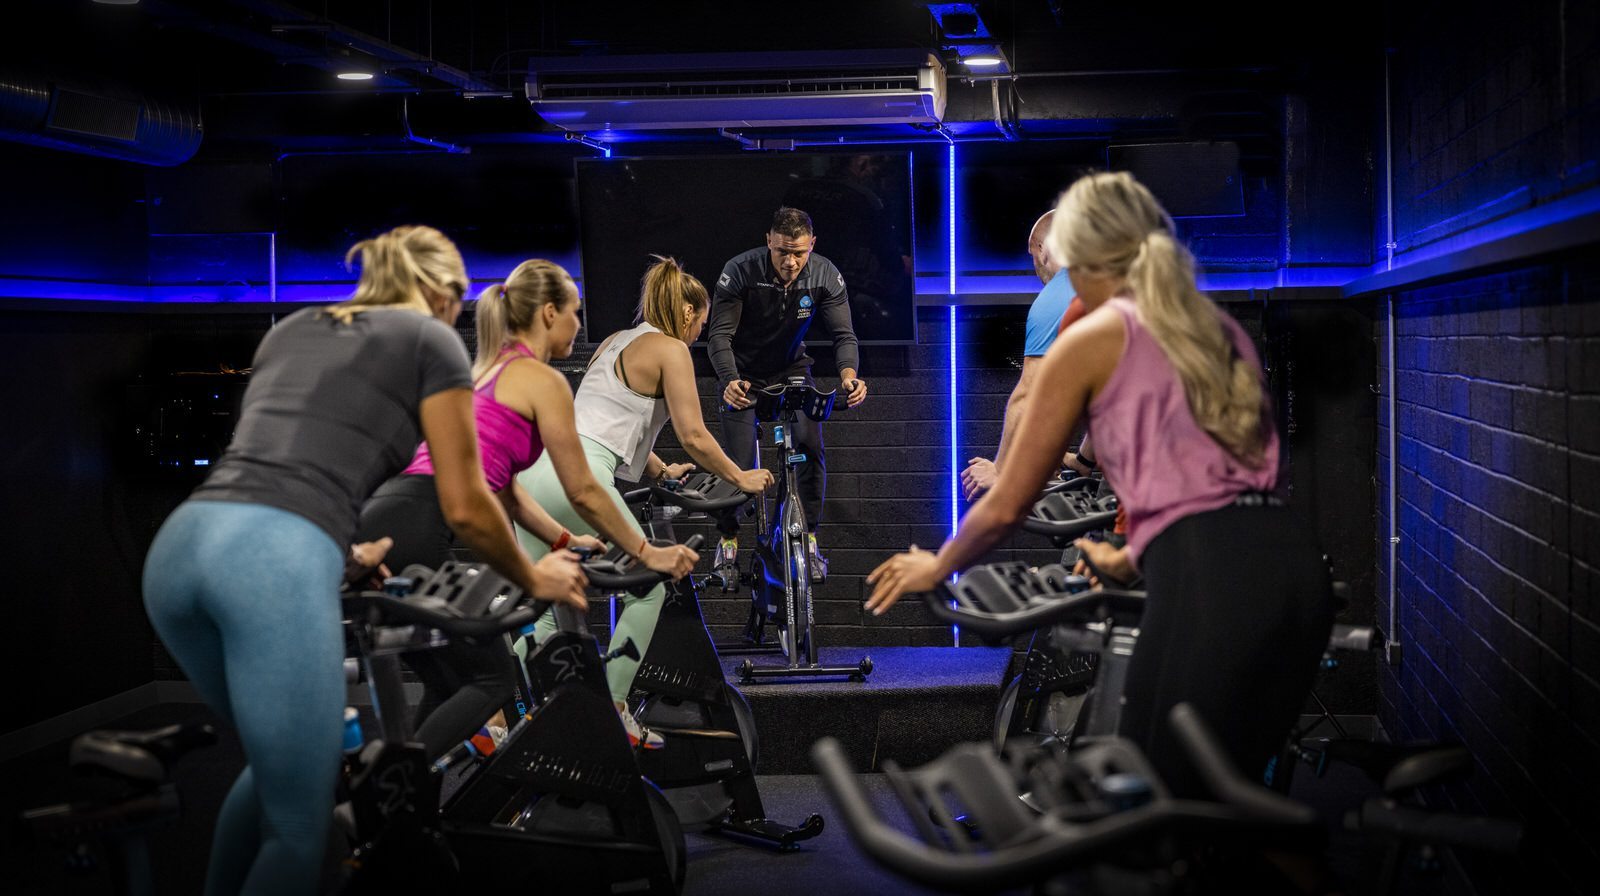 FLYEfit Spin Class